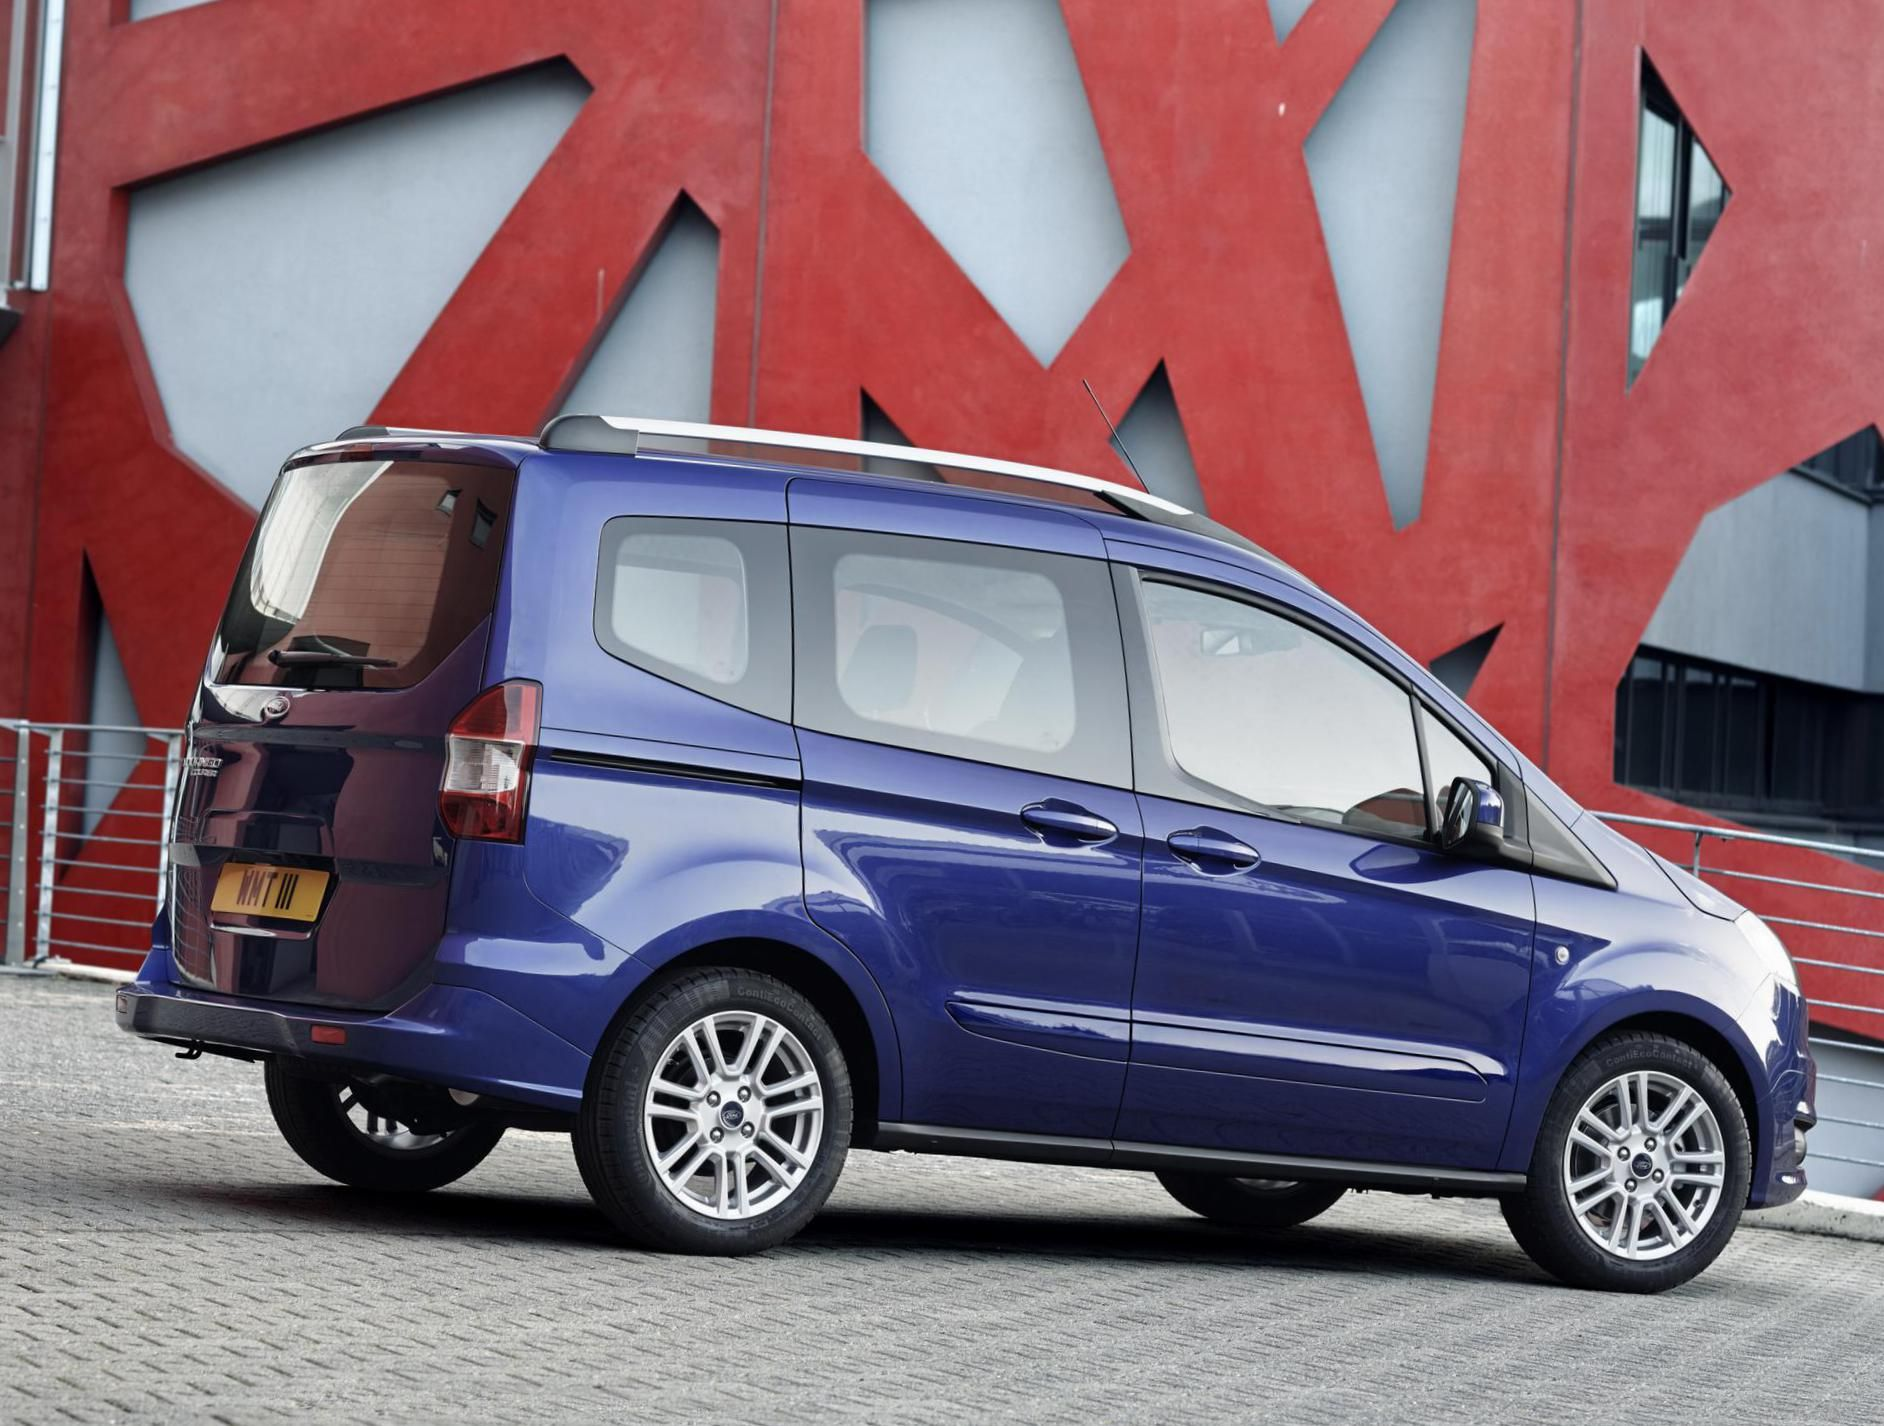 Ford tourneo courier pictures to pin on pinterest - Ford Tourneo Courier Photos And Specs Photo Ford Tourneo Courier Specification And 25 Perfect Photos Of Ford Tourneo Courier